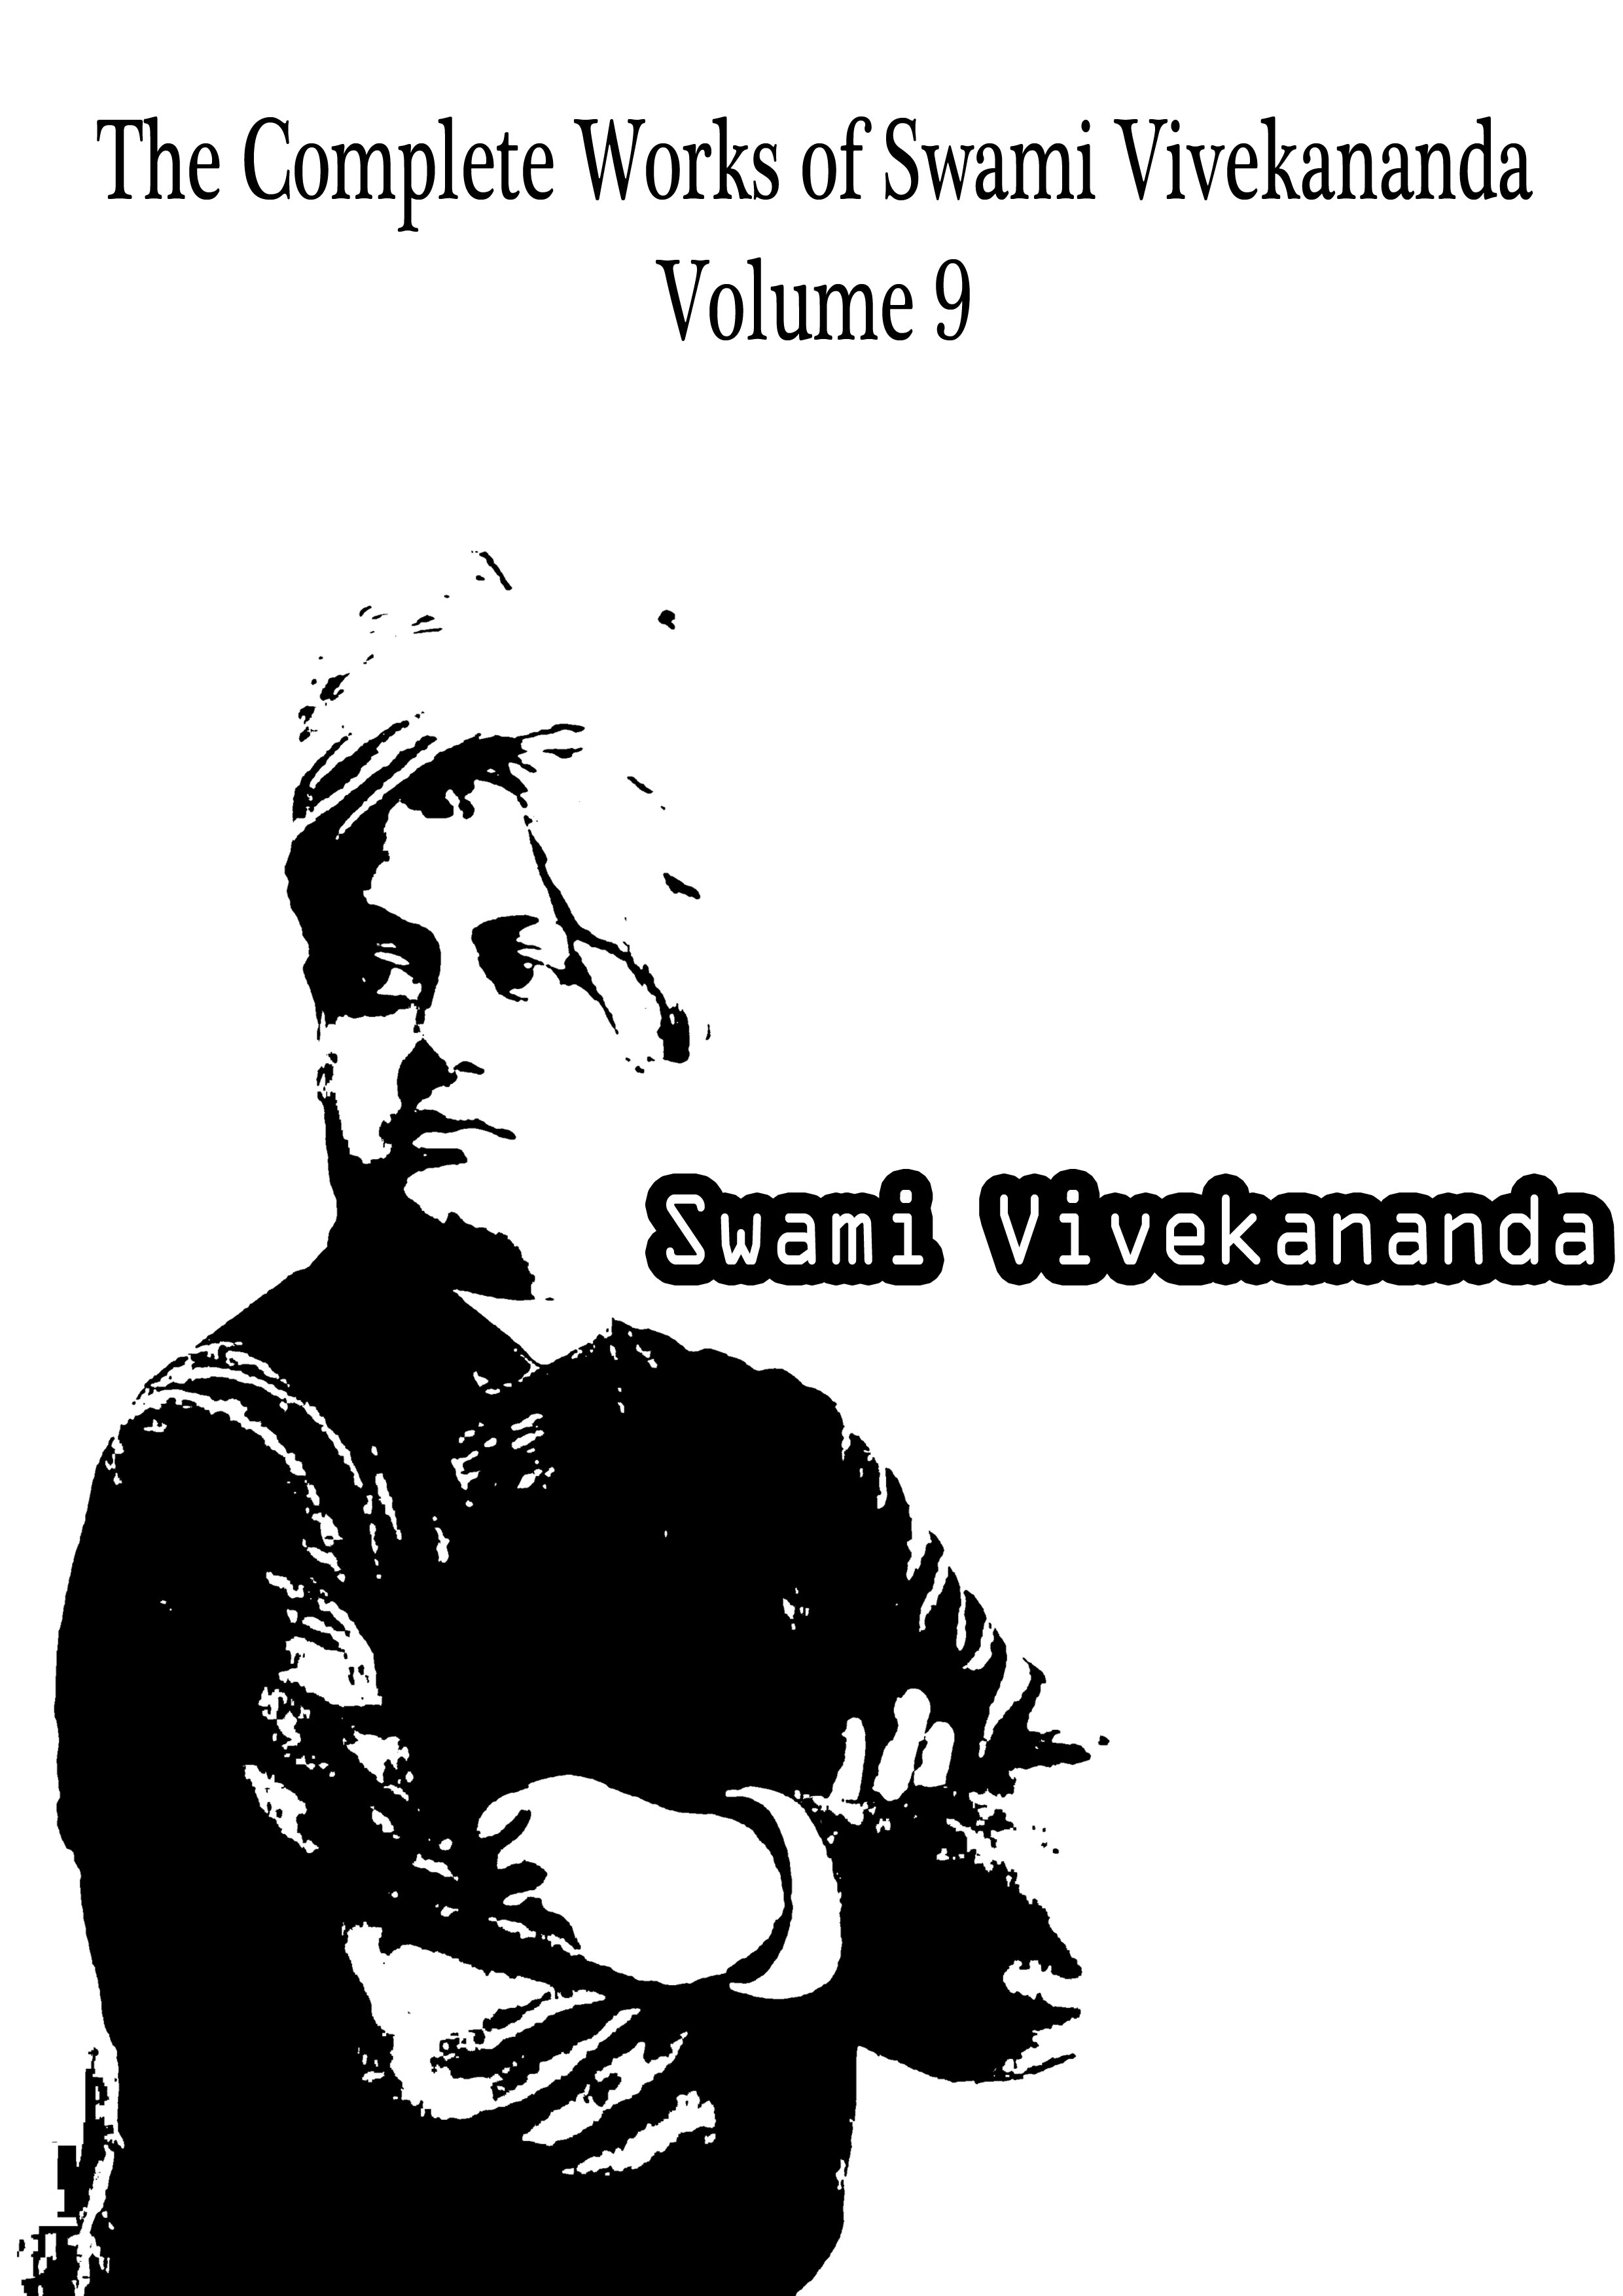 The Complete Works of Swami Vivekananda Volume 9